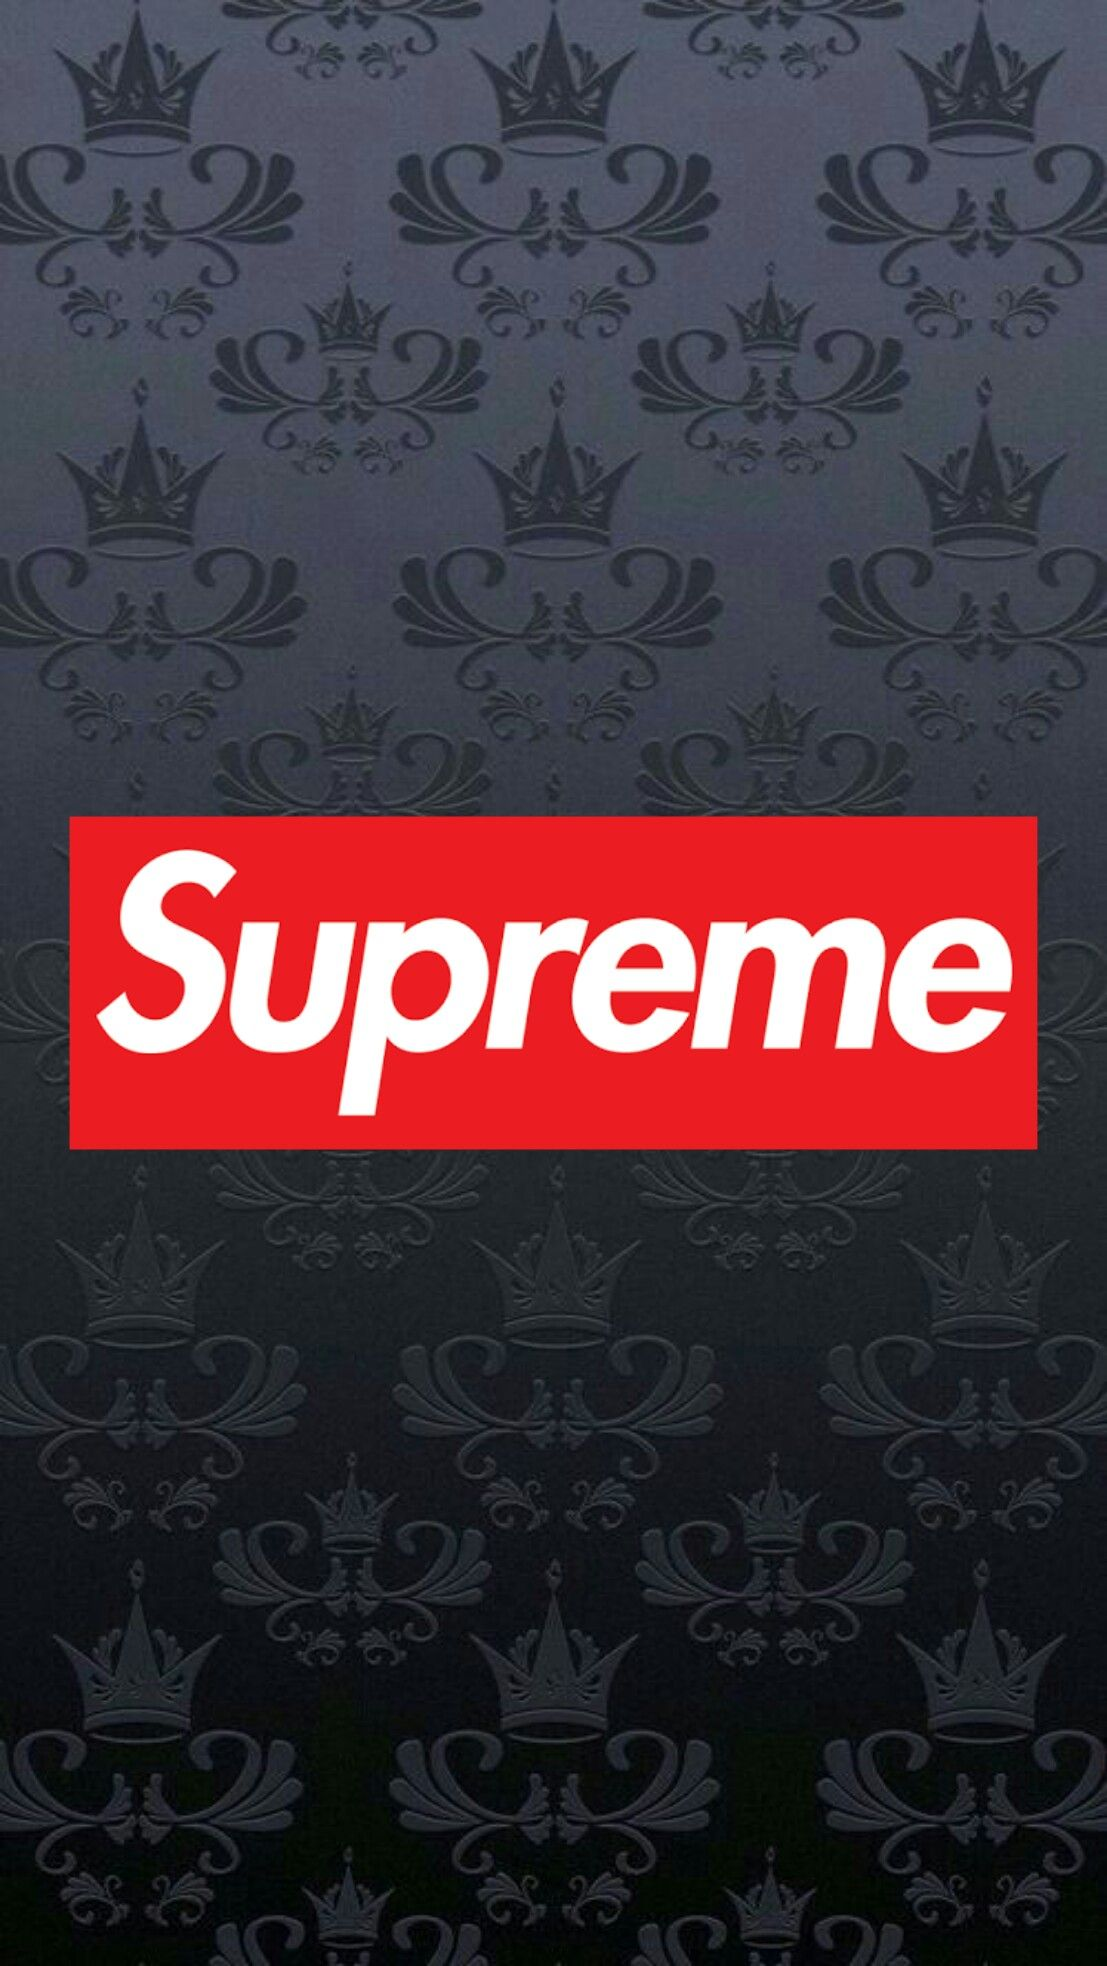 Supreme Floral Wallpaper Photo Jllsly Supreme Wallpaper